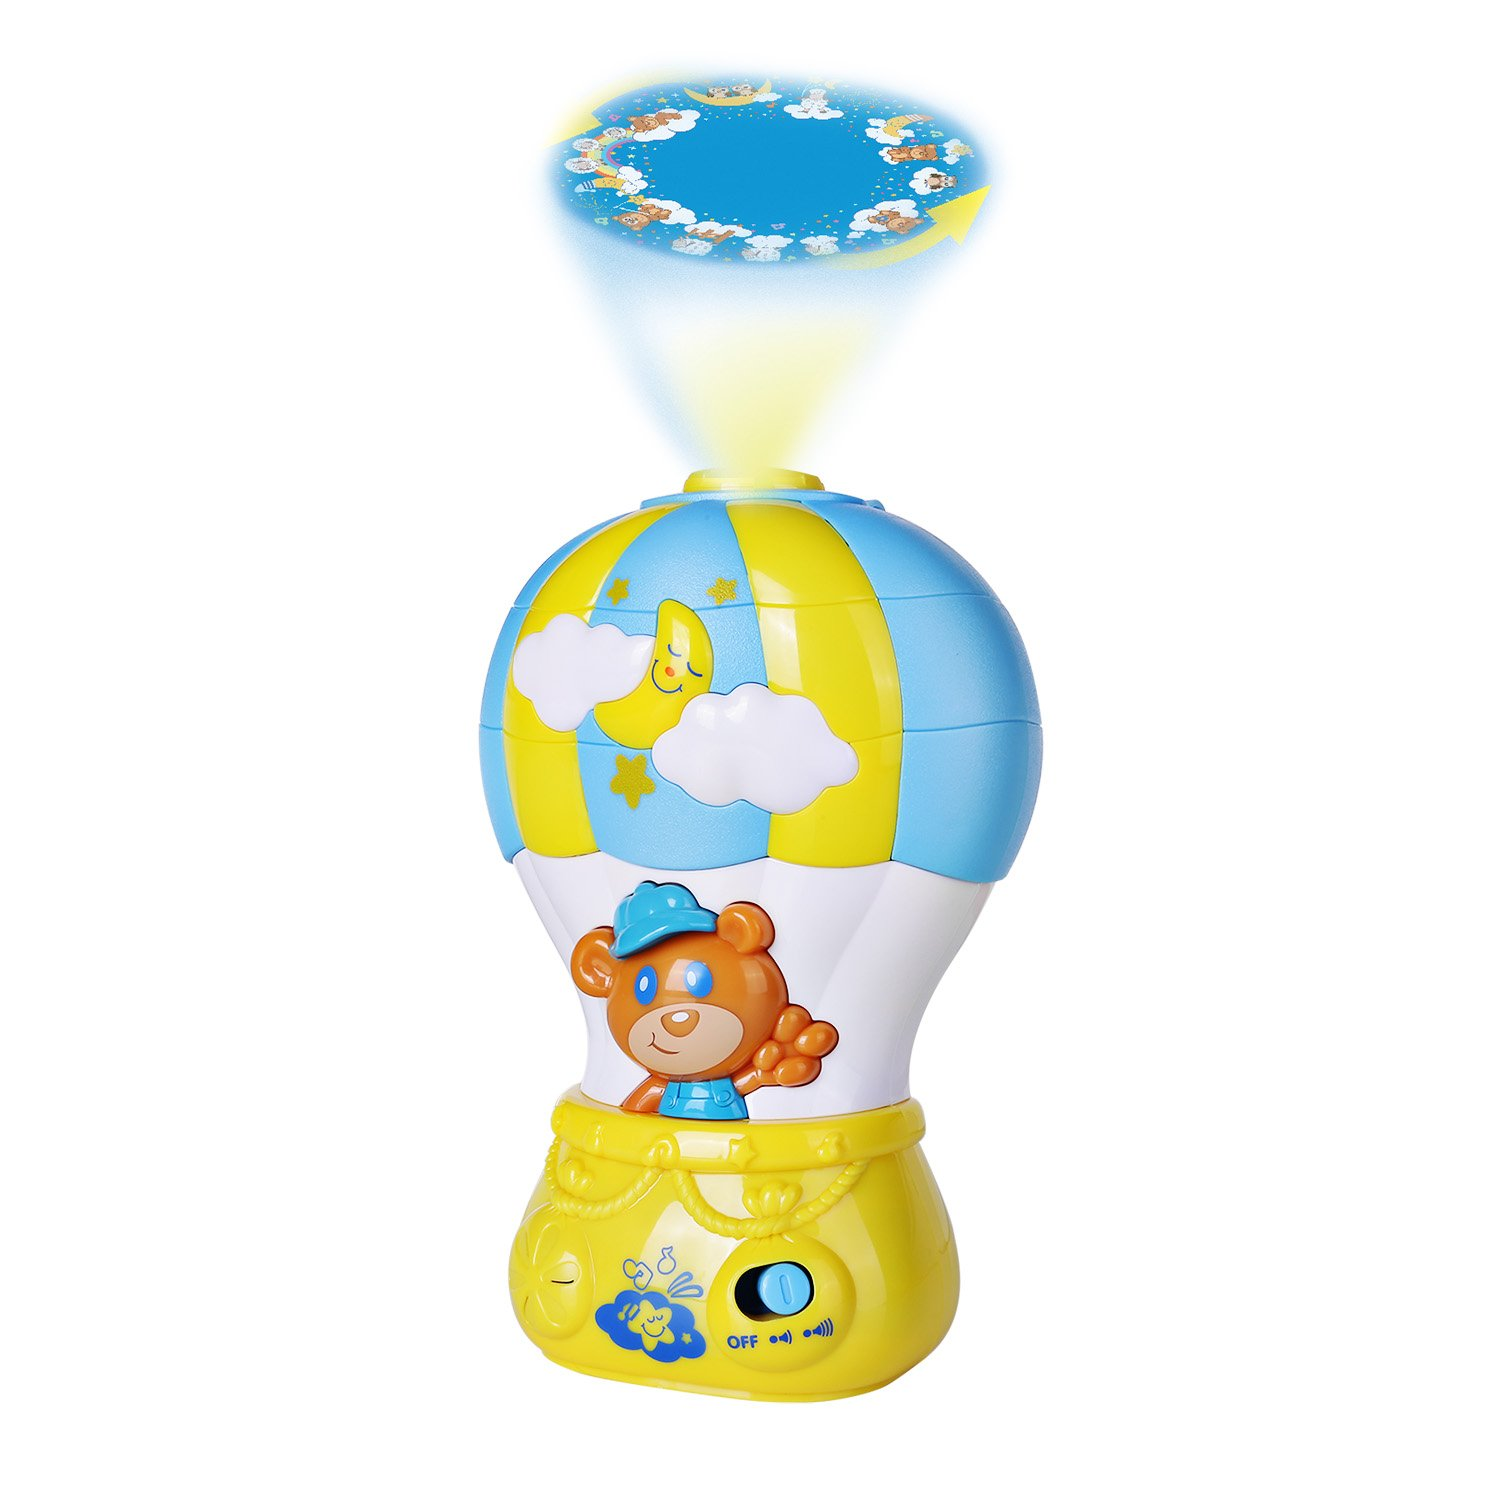 SainSmart Jr. HAP-P-Kid Baby Crib Soother Baby Soother for Sleep, Air Balloon Light Soothe with Colored Projector and Melodies